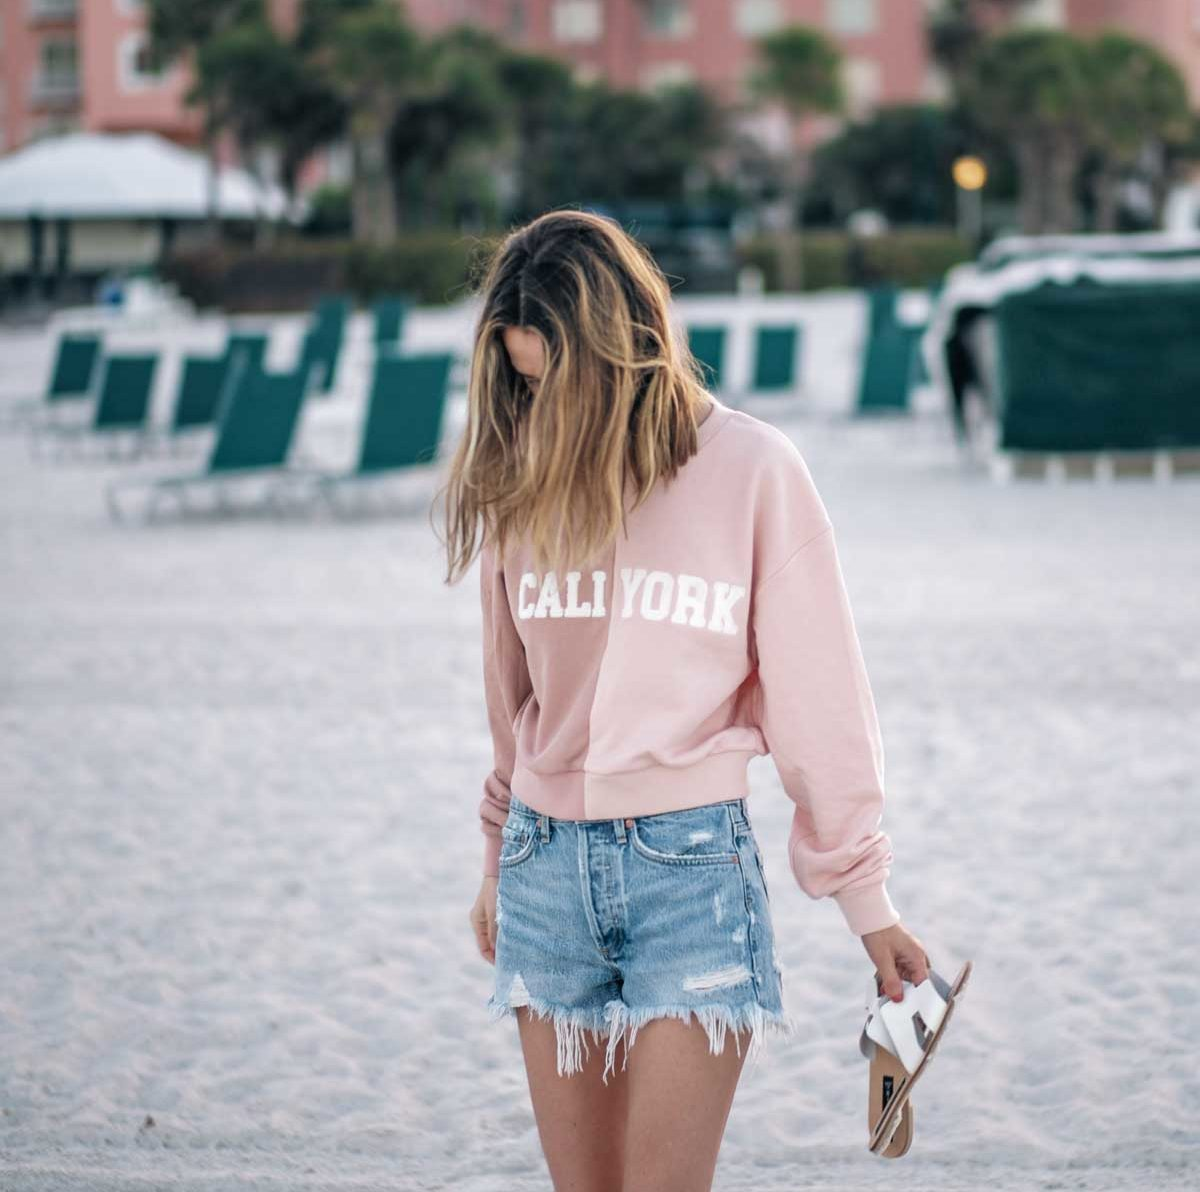 Jess Ann Kirby wears a Cynthia Rowley sweatshirt and Agolde vintage shorts on the beach in Saint Petersburg